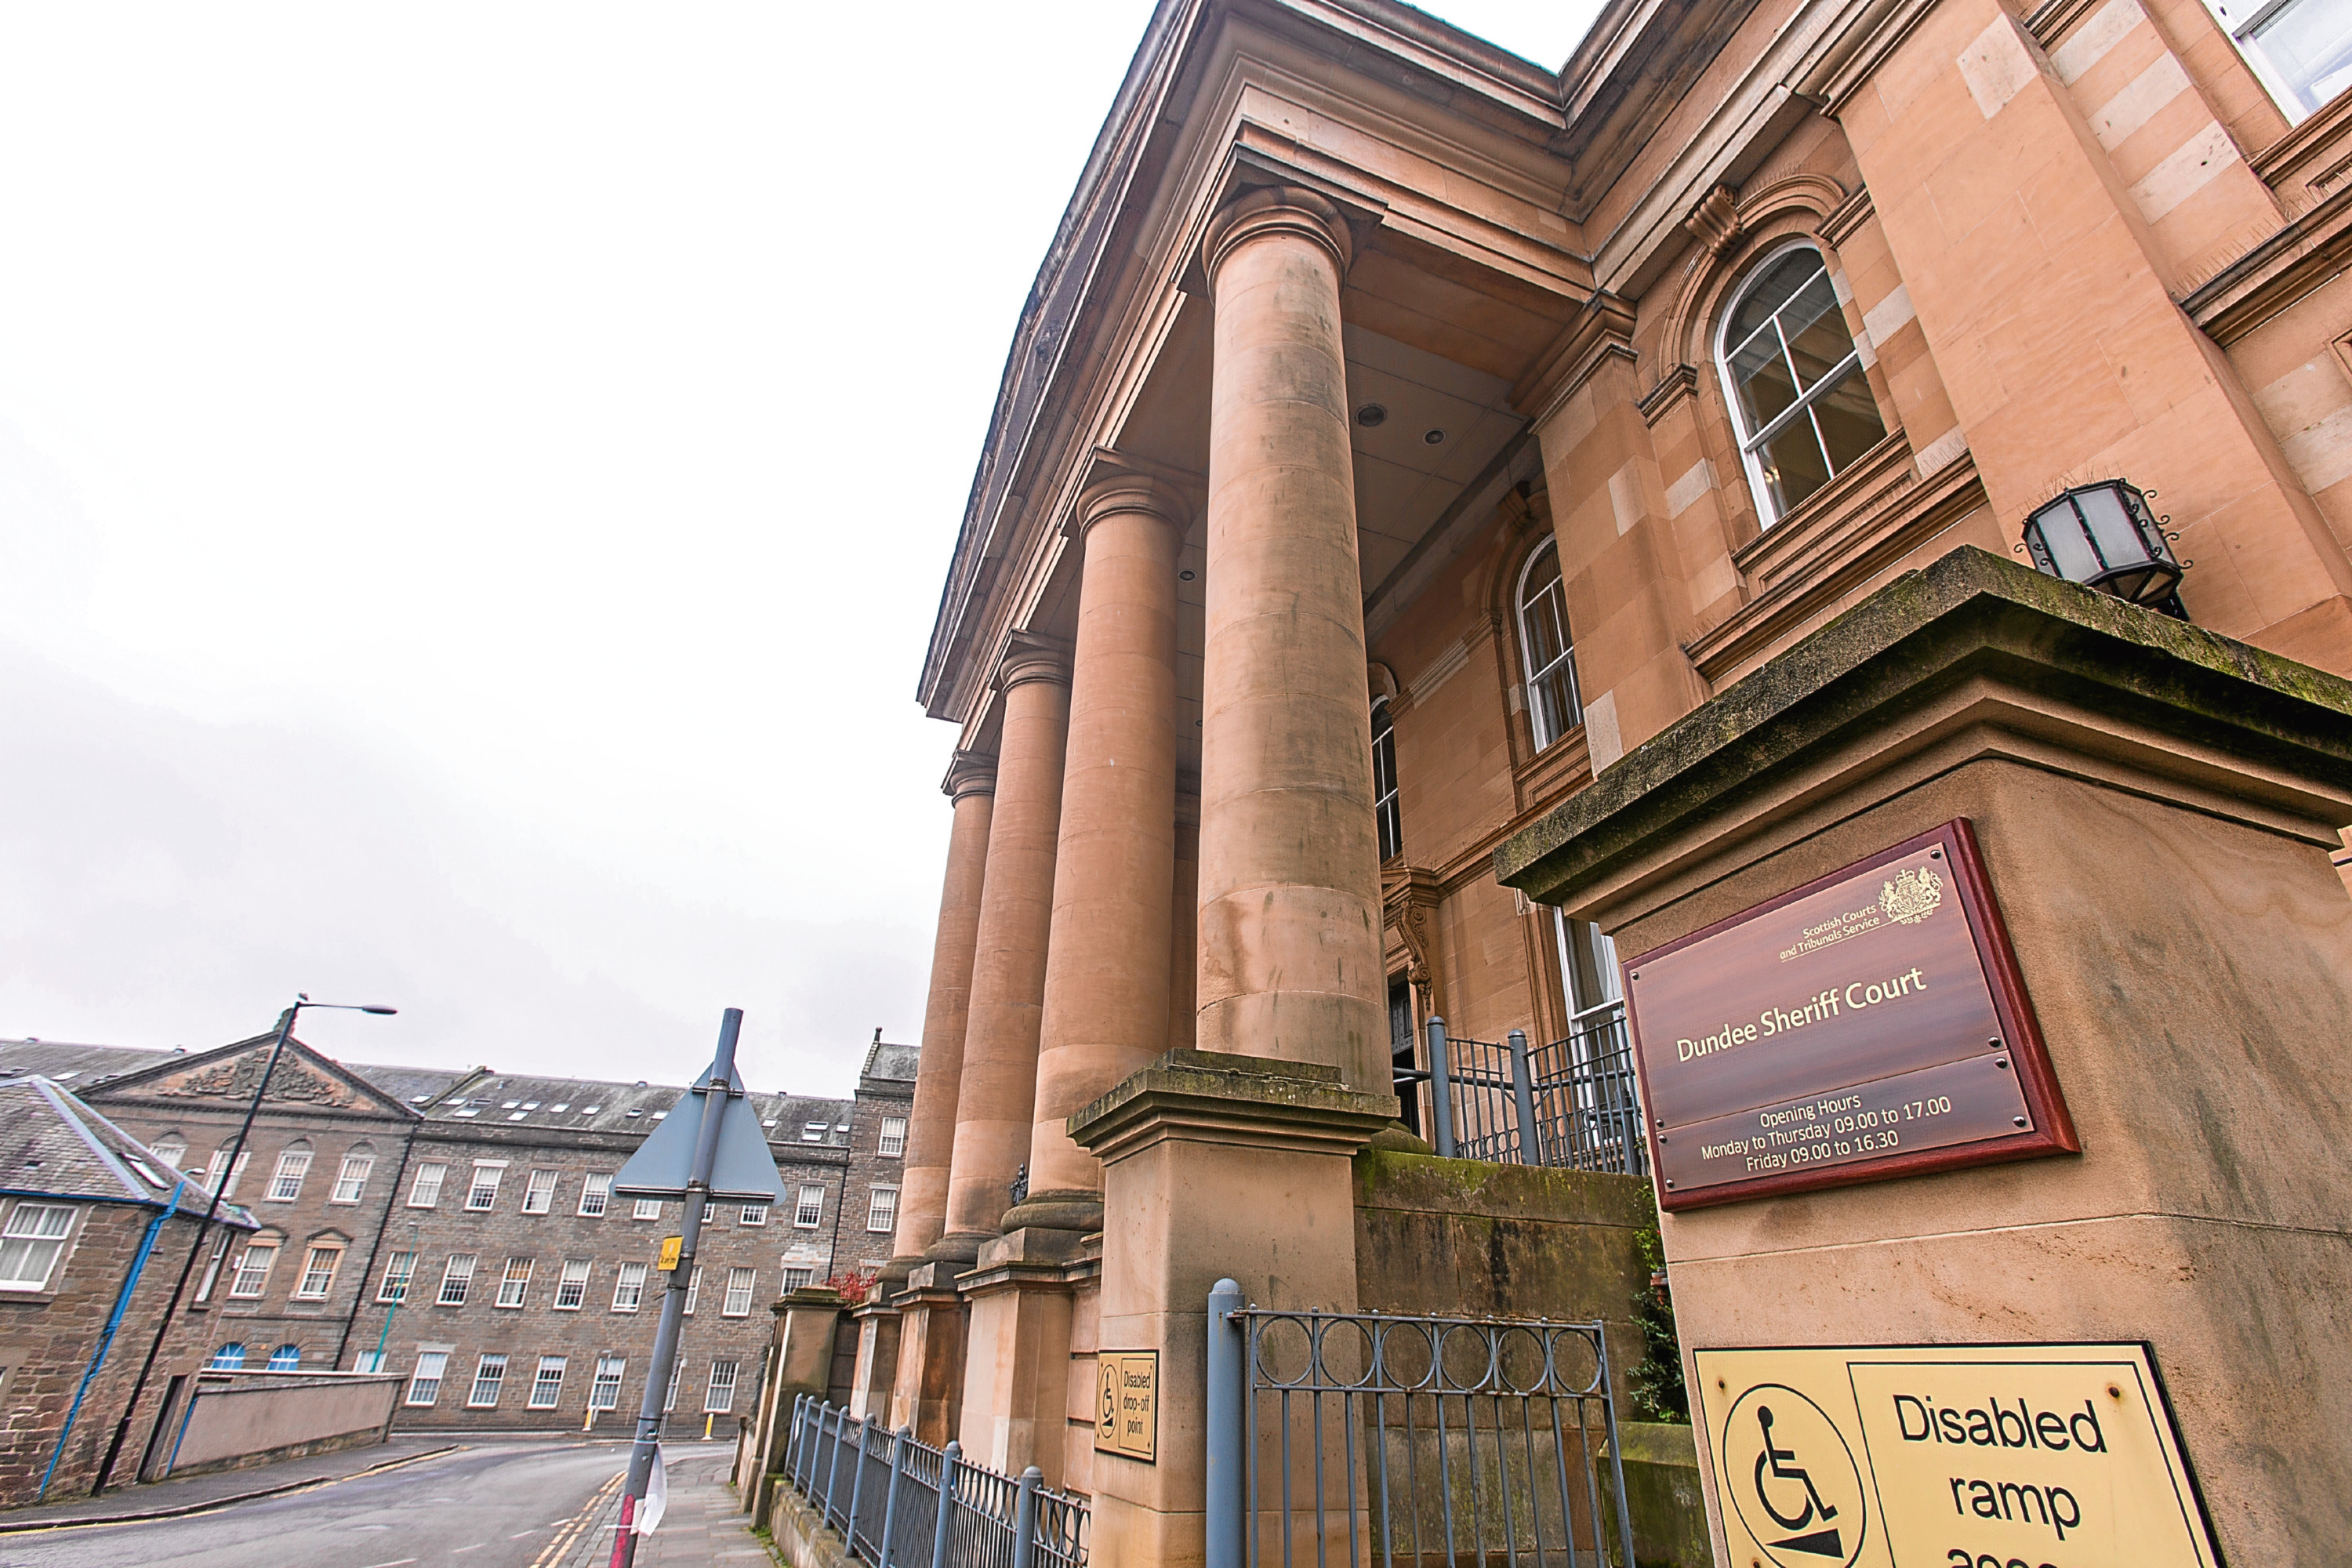 STOCK - Dundee Sheriff Court - Dundee - Tuesday 28 March 2017